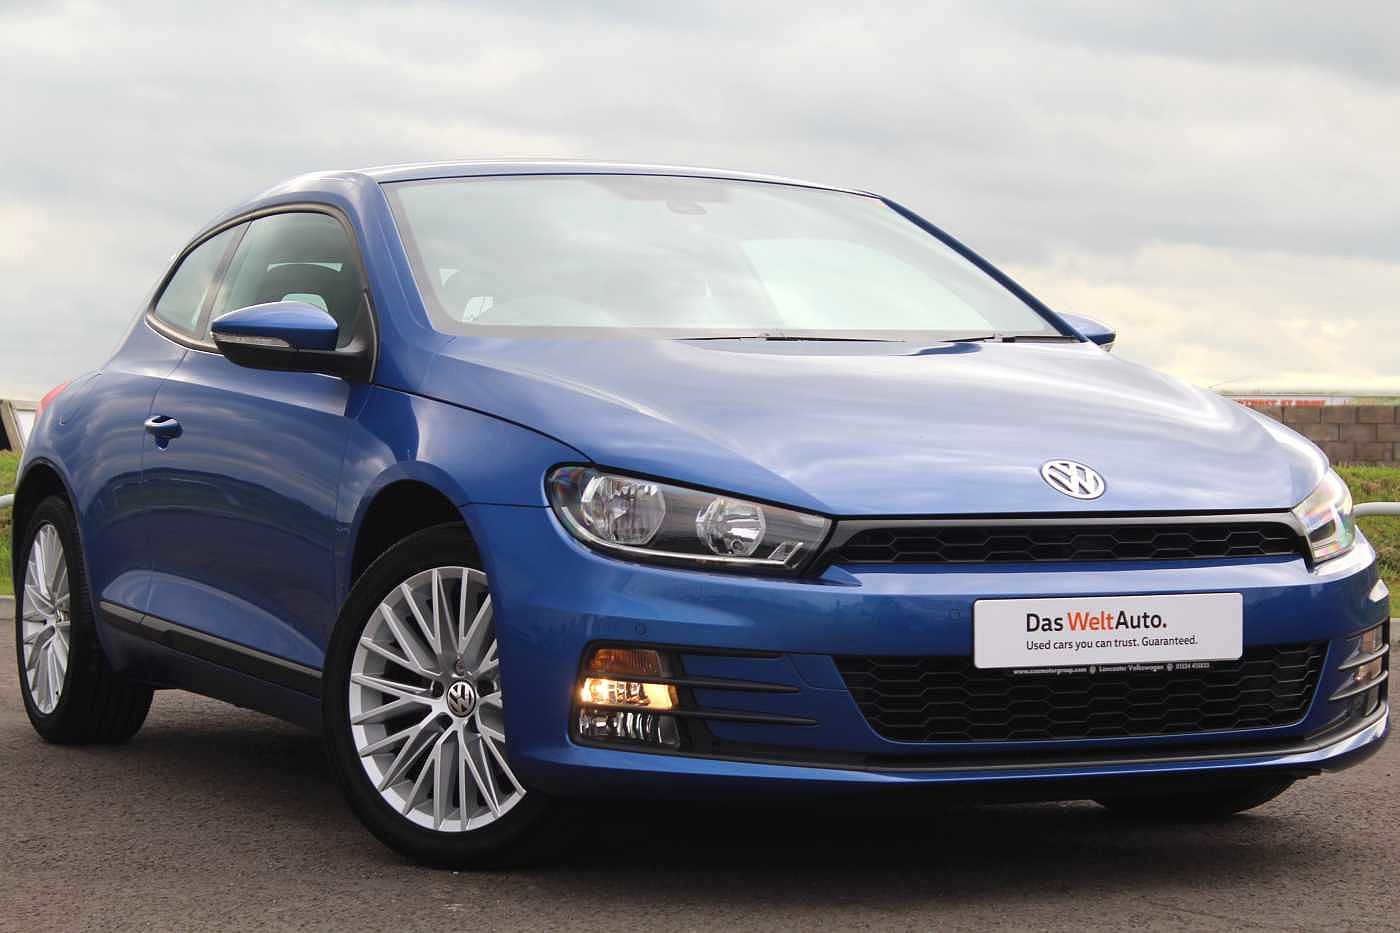 Volkswagen Scirocco 1.4 TSI Base BMT (125 PS) 3-Dr Coupe